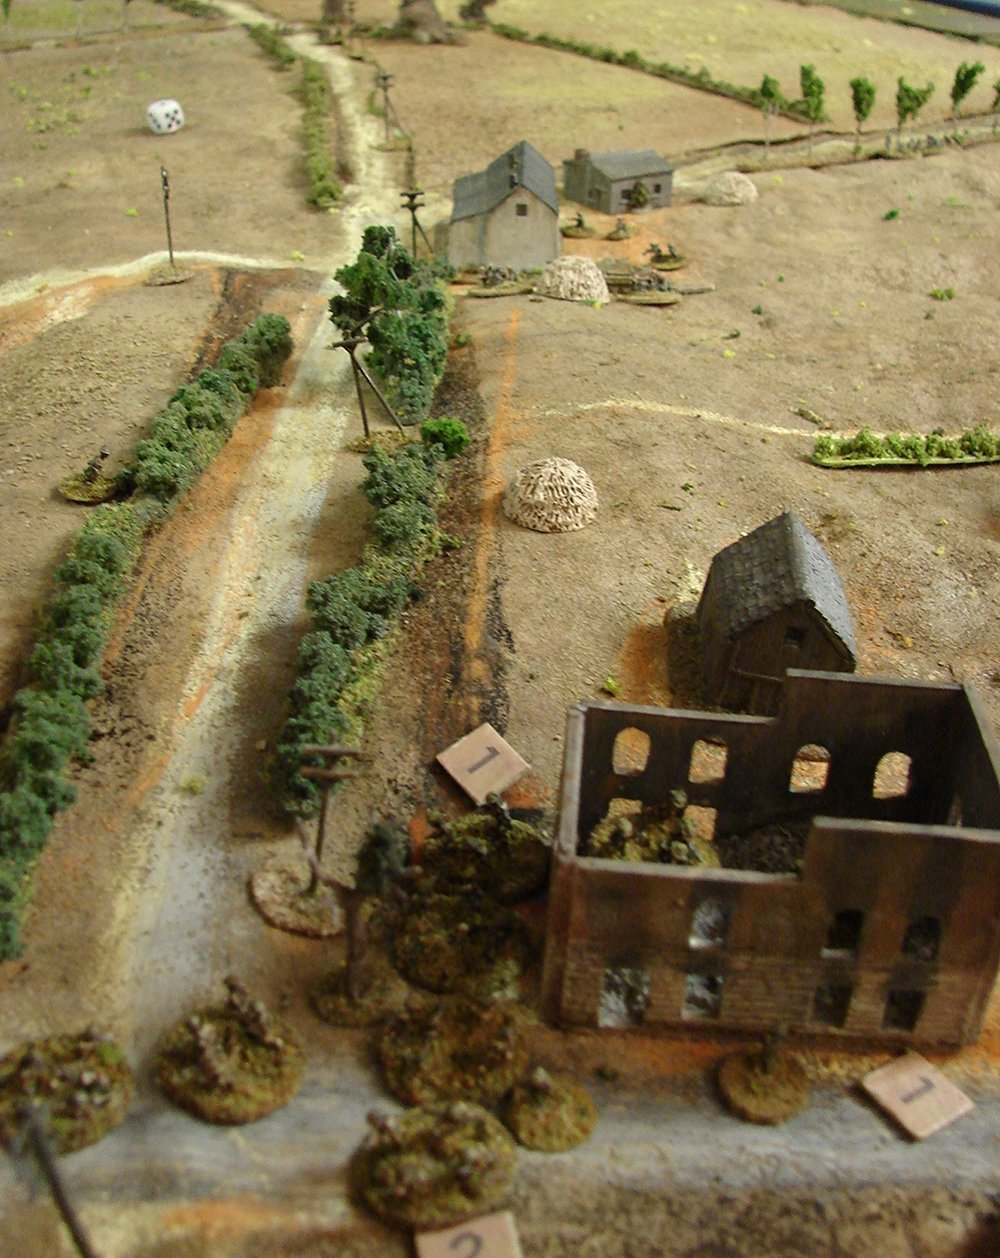 Securing the right flank